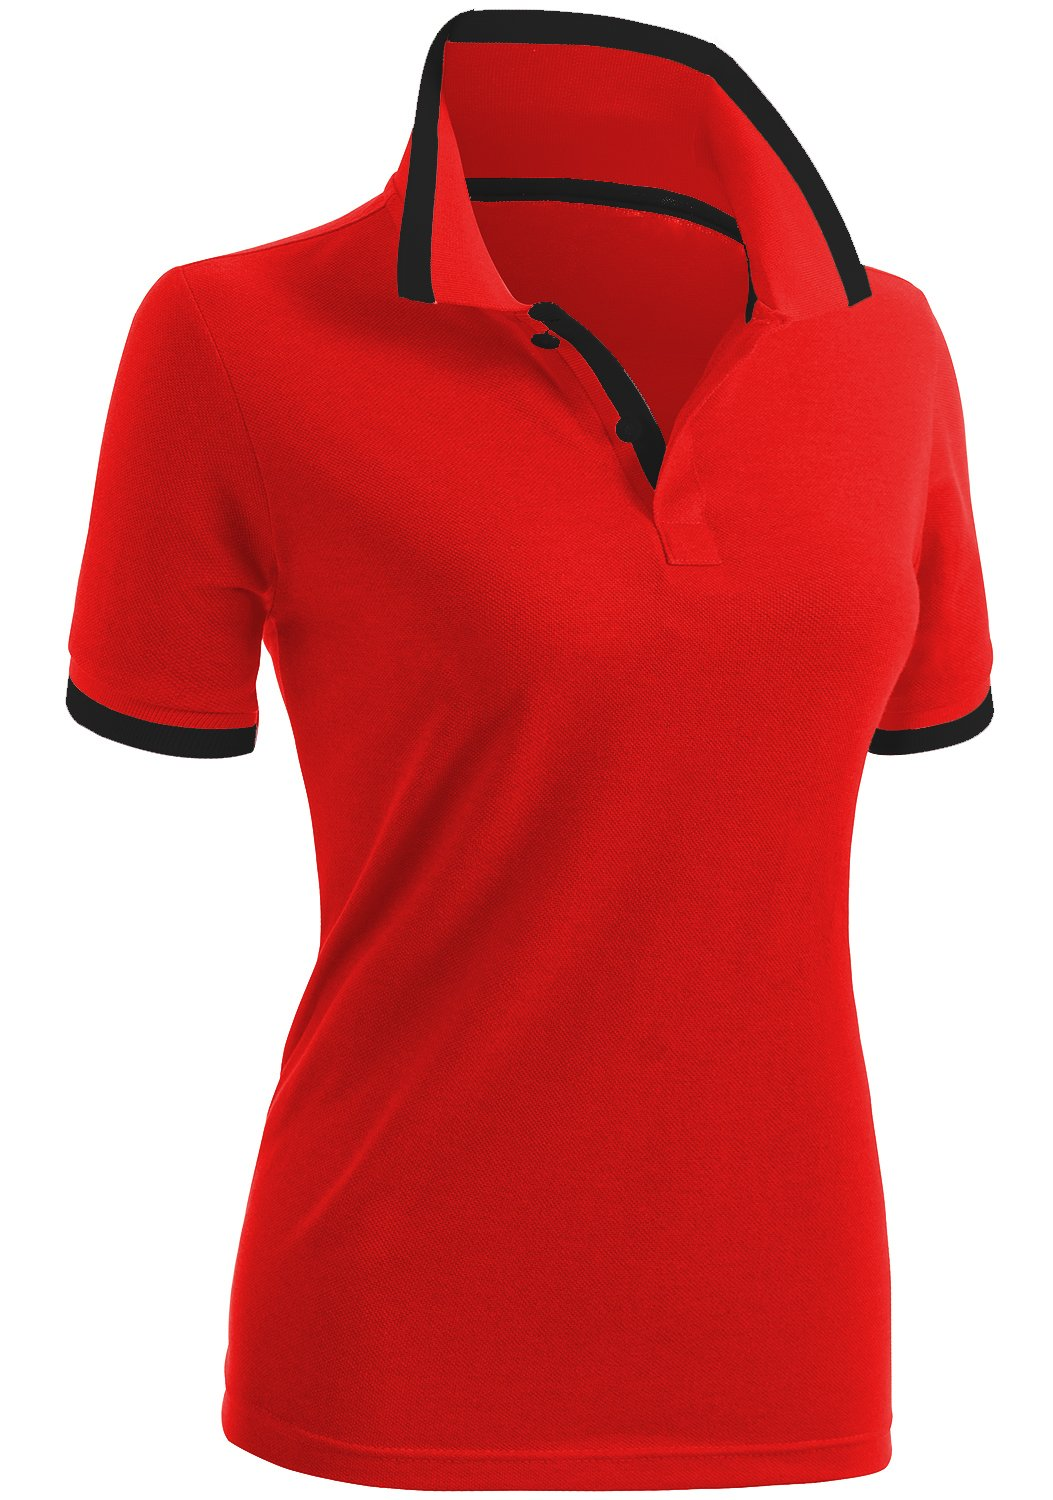 CLOVERY Women's Line Point Collar Short Sleeve Polo Shirts RED US M/Tag M